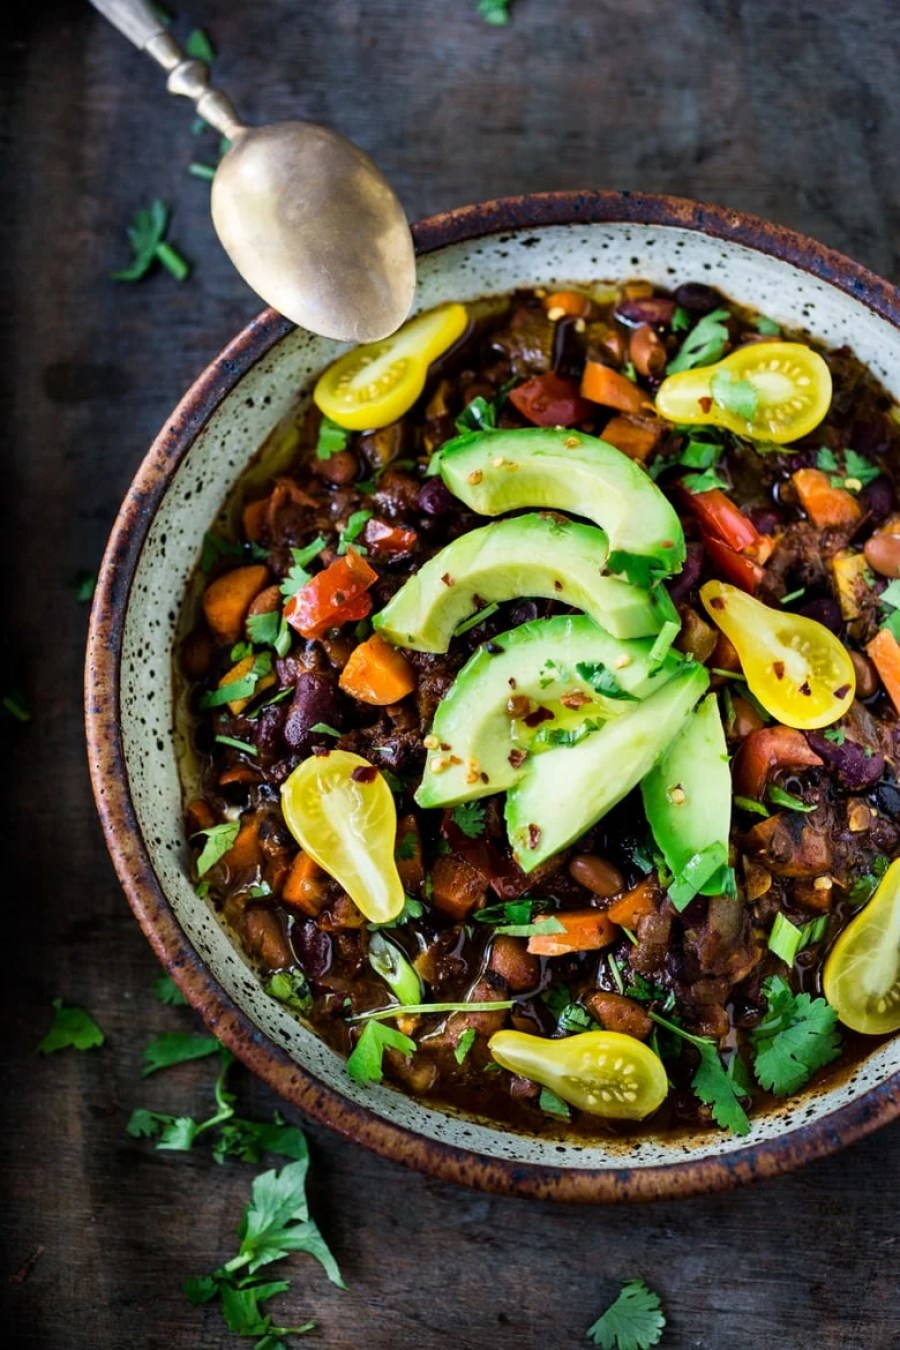 Make life simple quick vegan chili feasting at home clean out your fridge quick vegan chili loaded up with healthy veggies and beans forumfinder Gallery